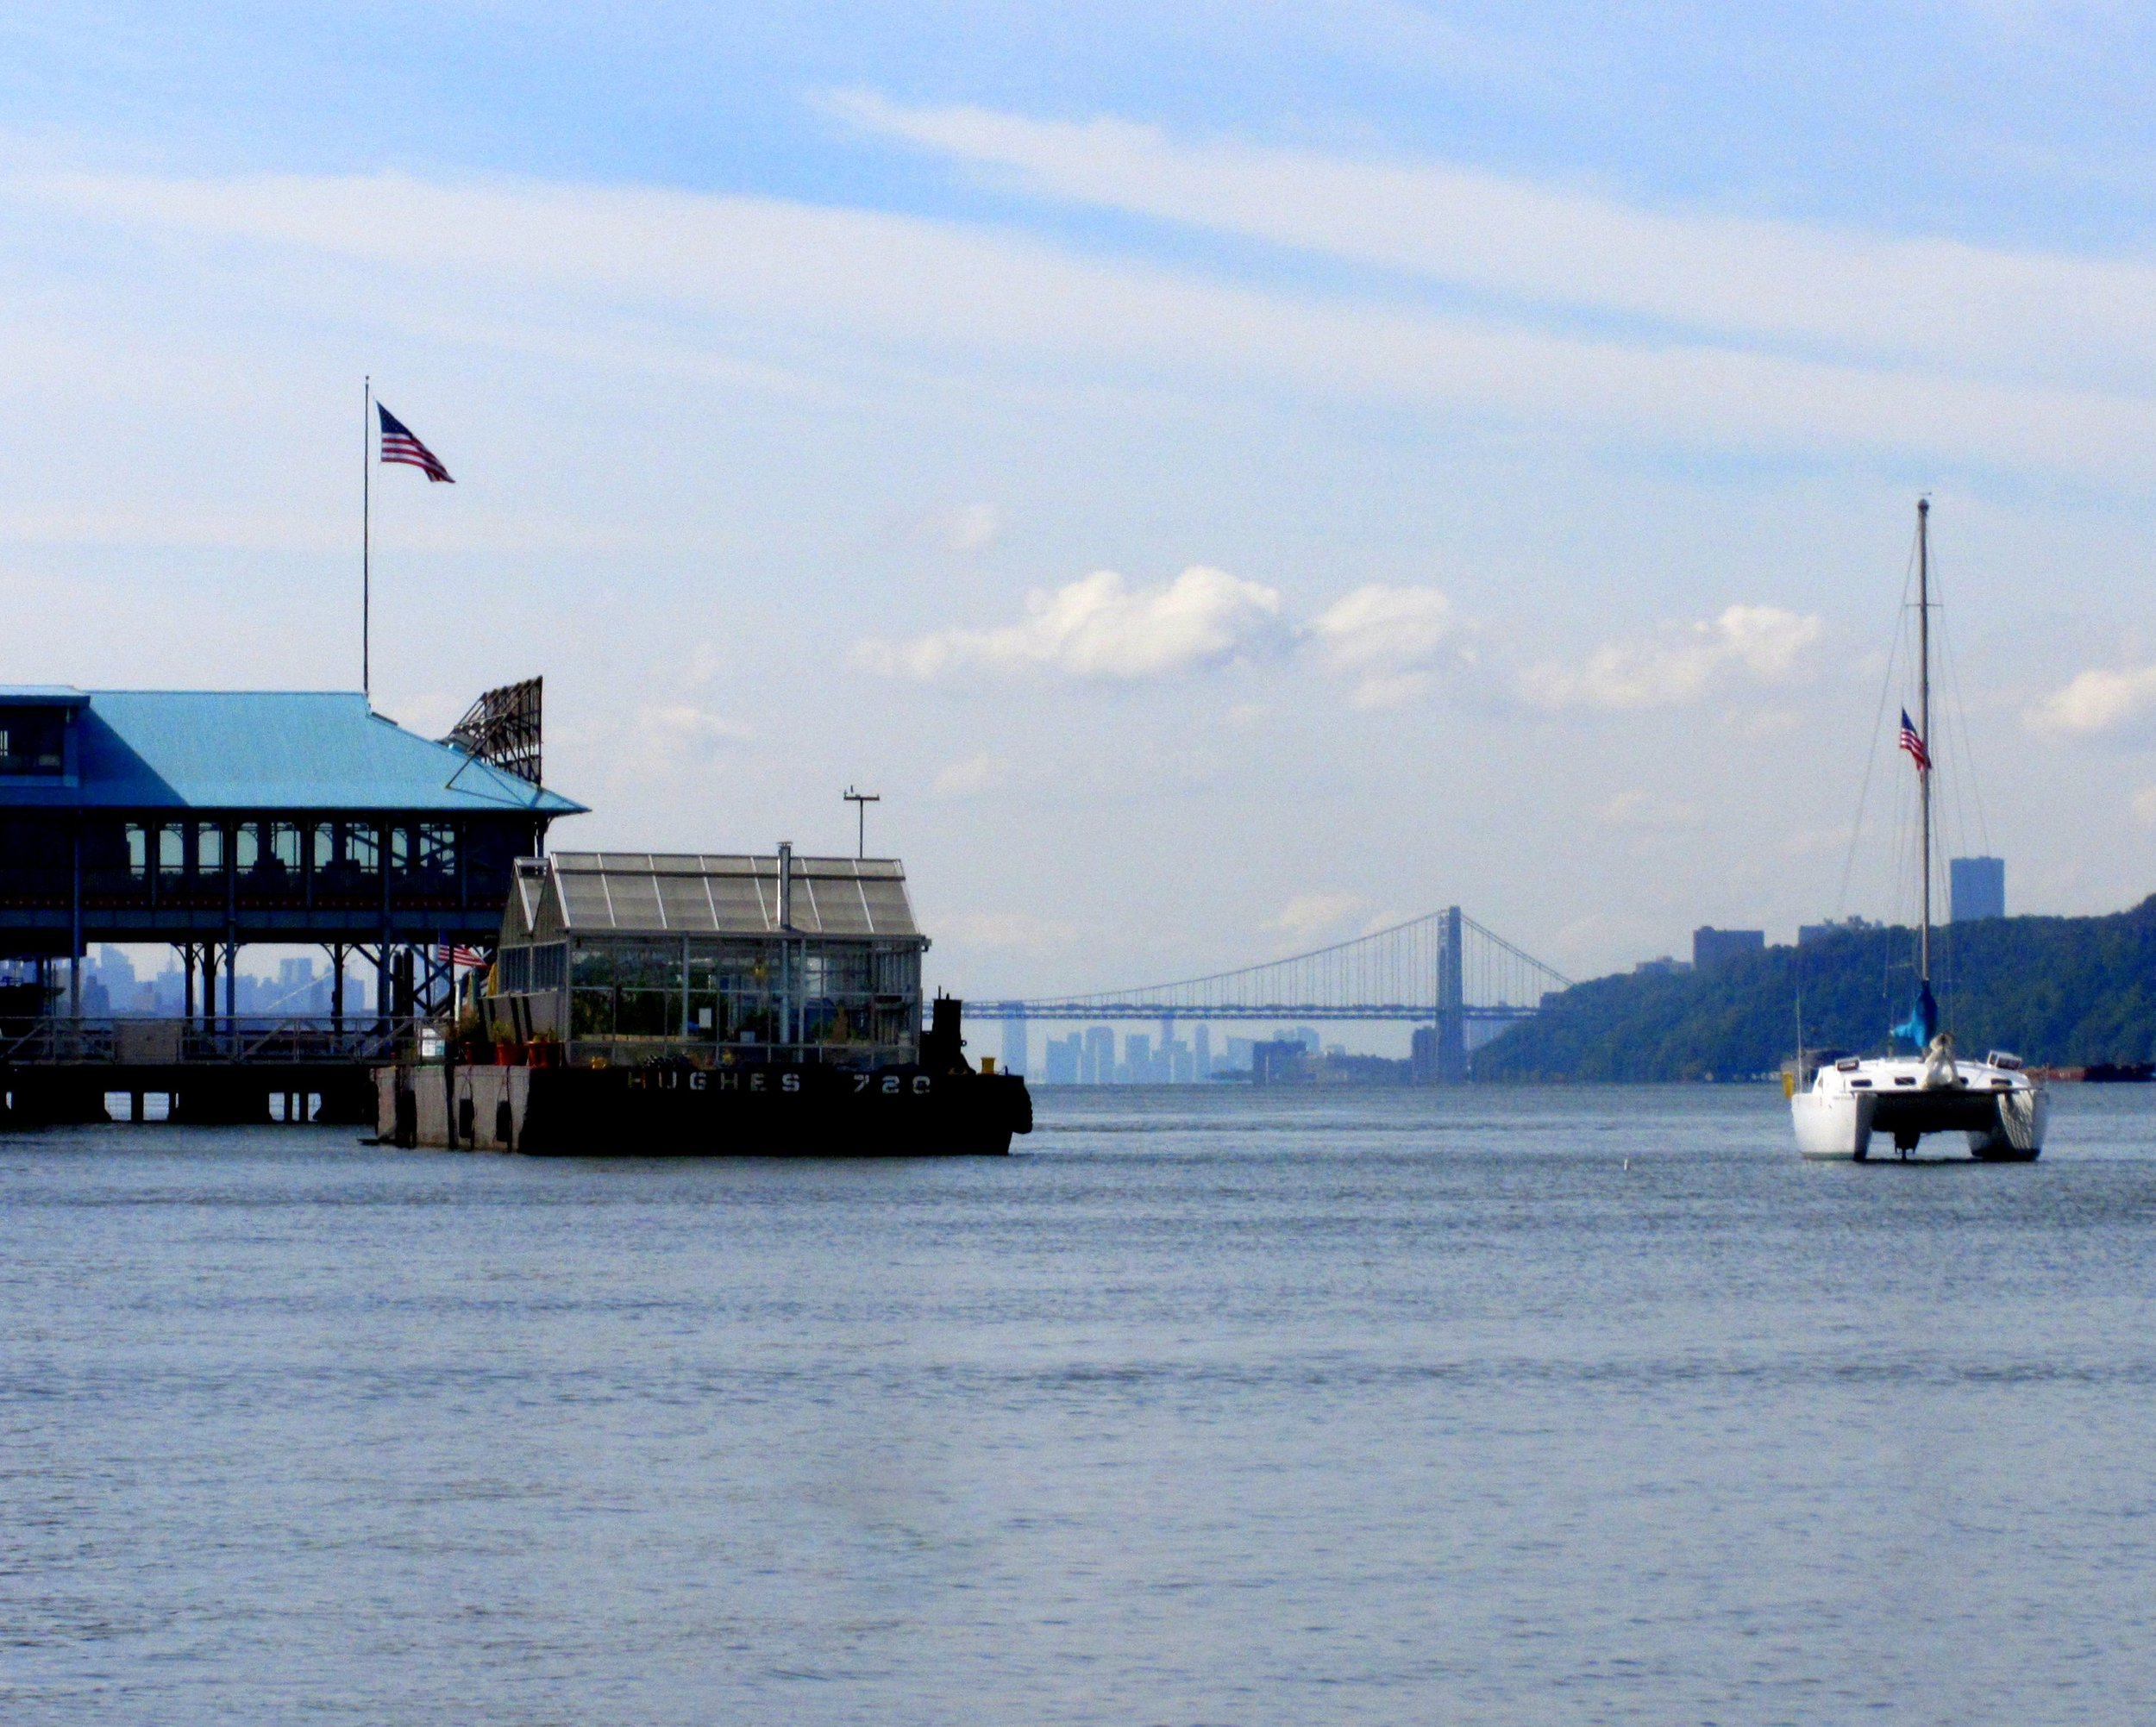 Our boat, the Wildcat, anchored near Groundwork Hudson Valley's Science Barge in the Hudson River last September.